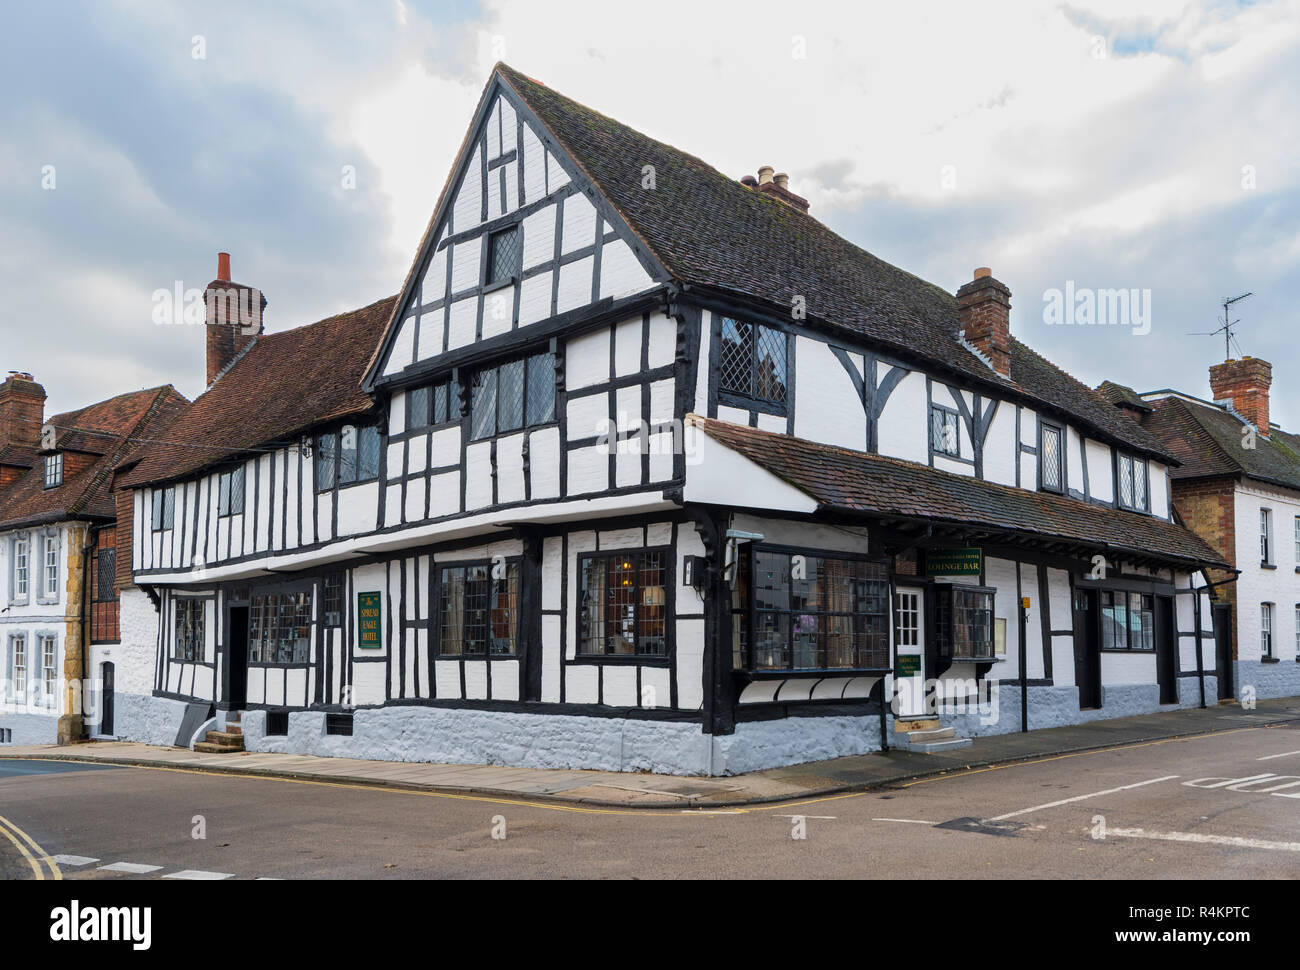 Lounge Bar of The Spread Eagle Hotel, a luxury British hotel in a 1400's old Coaching Inn building in Midhurst, West Sussex, England, UK. - Stock Image